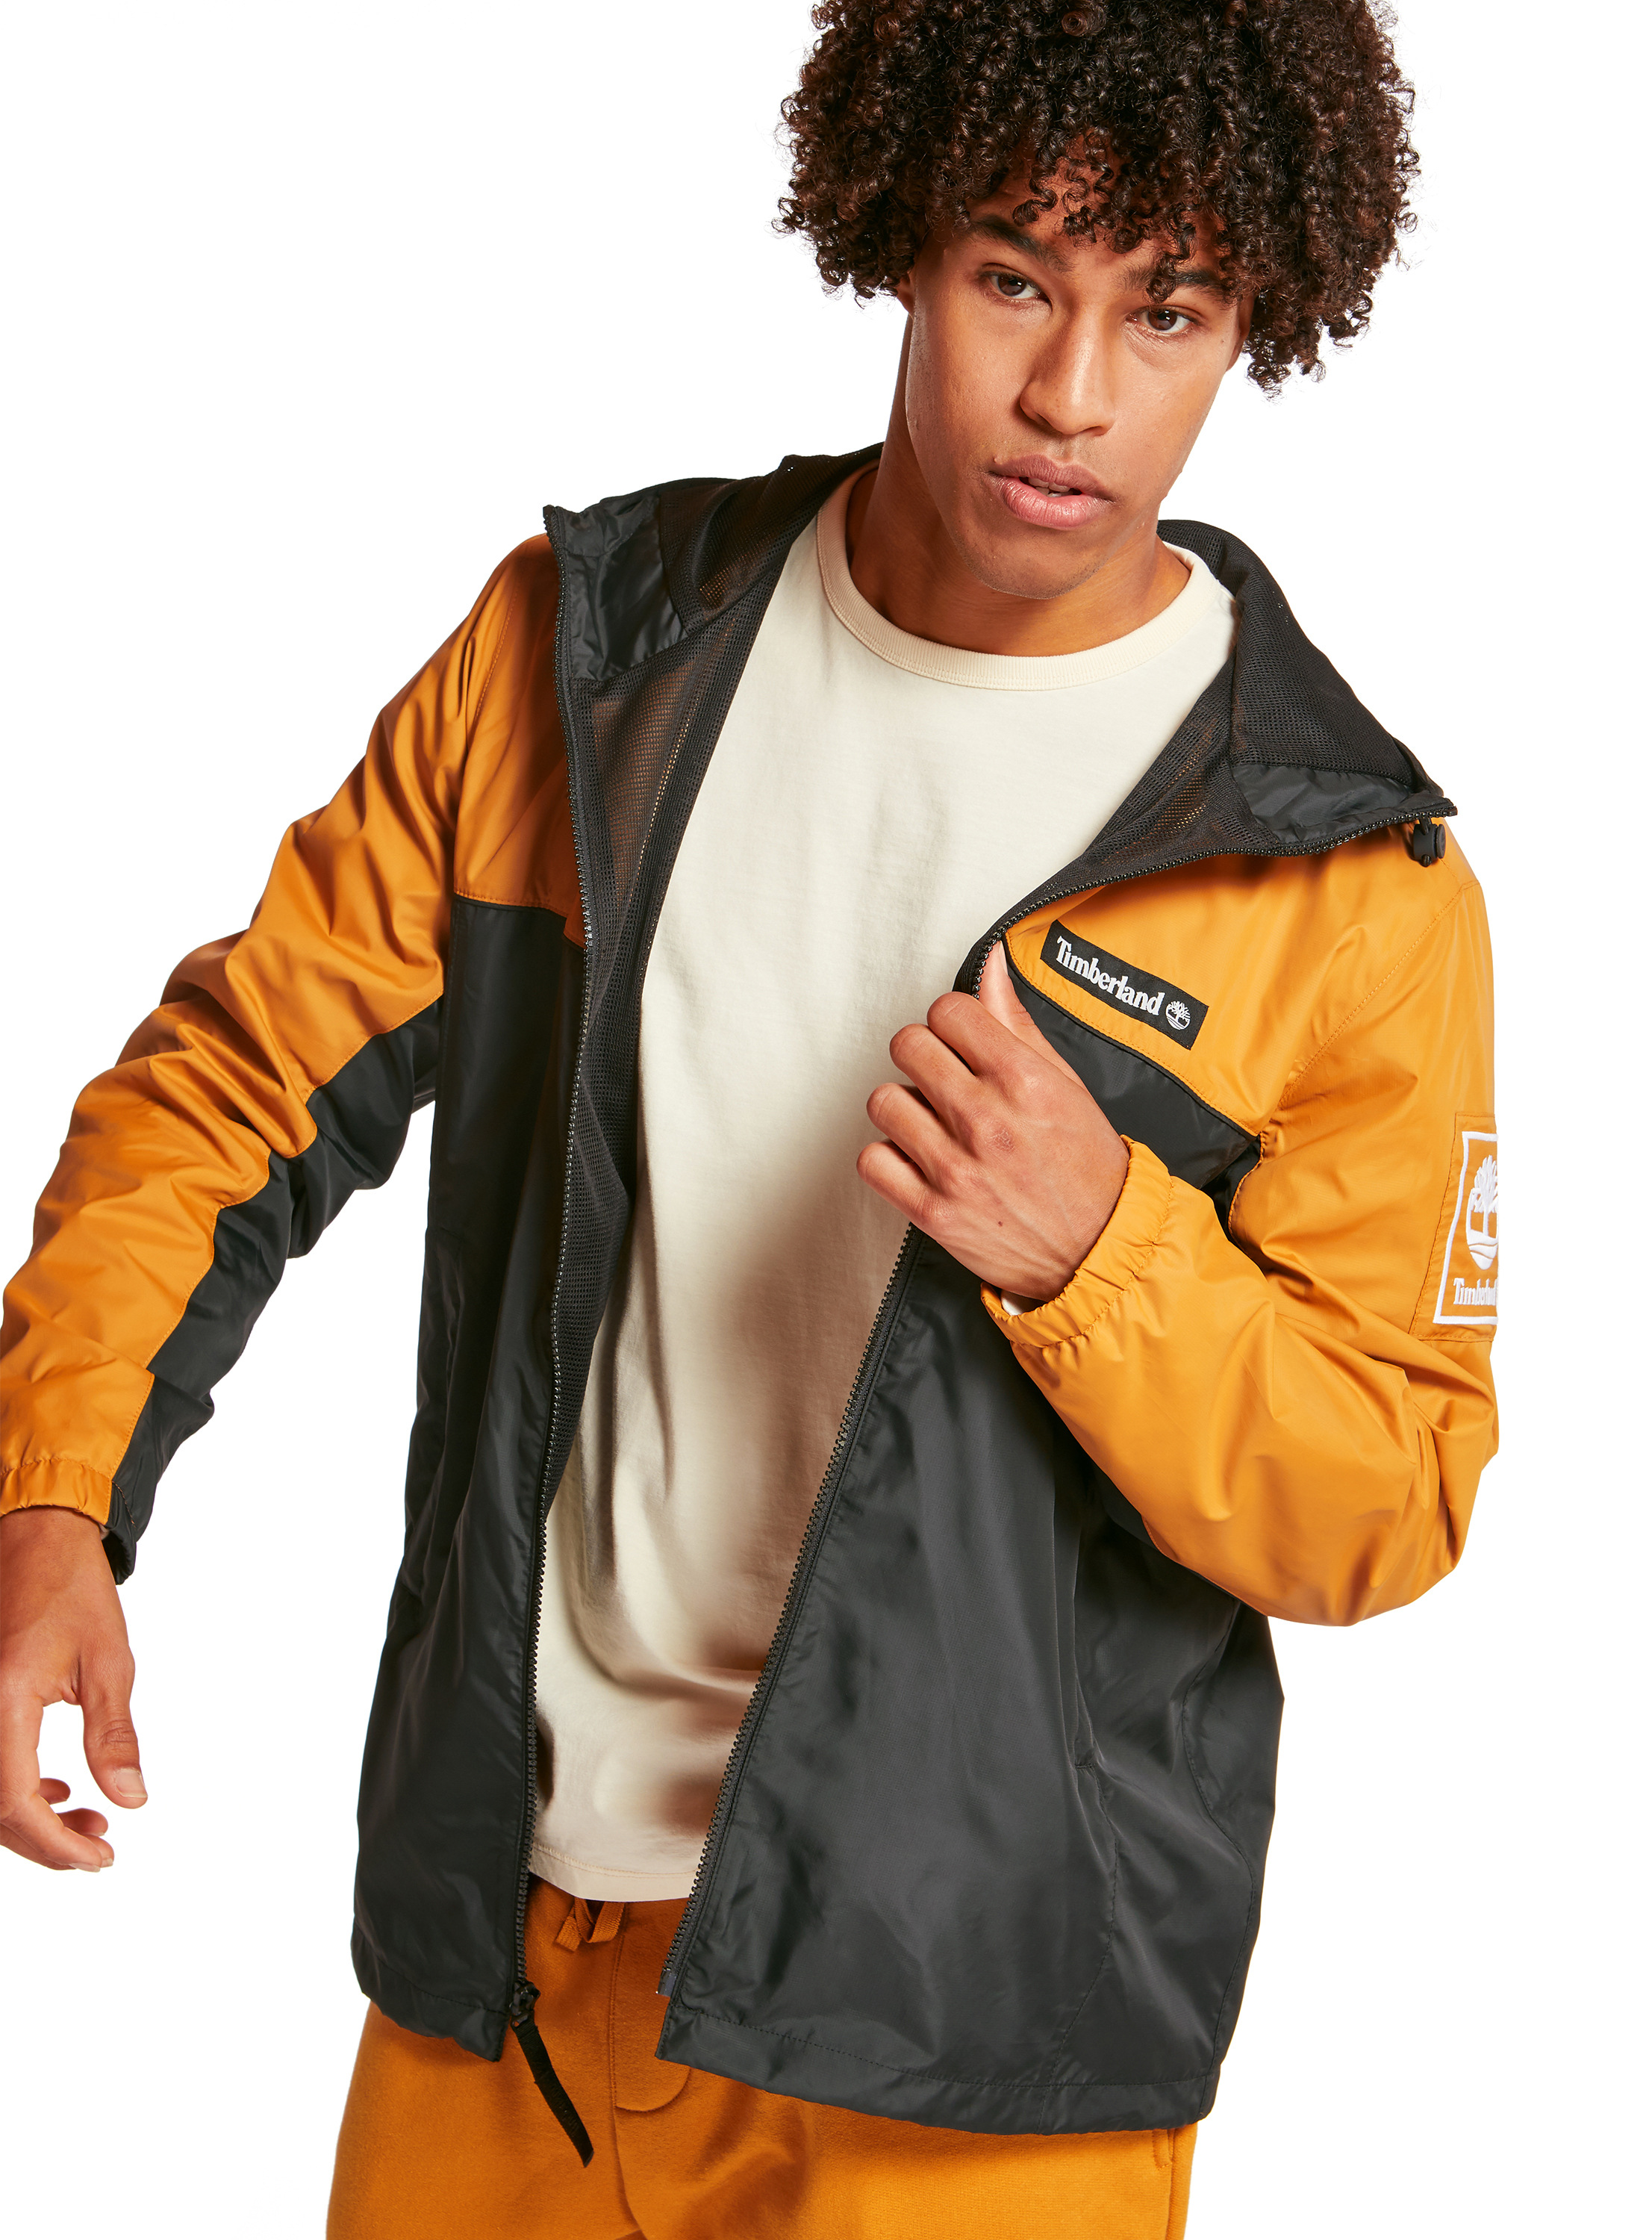 Timberland Windbreaker Full Zip Jacket Men S Up To 41 Off With Free S H Campsaver